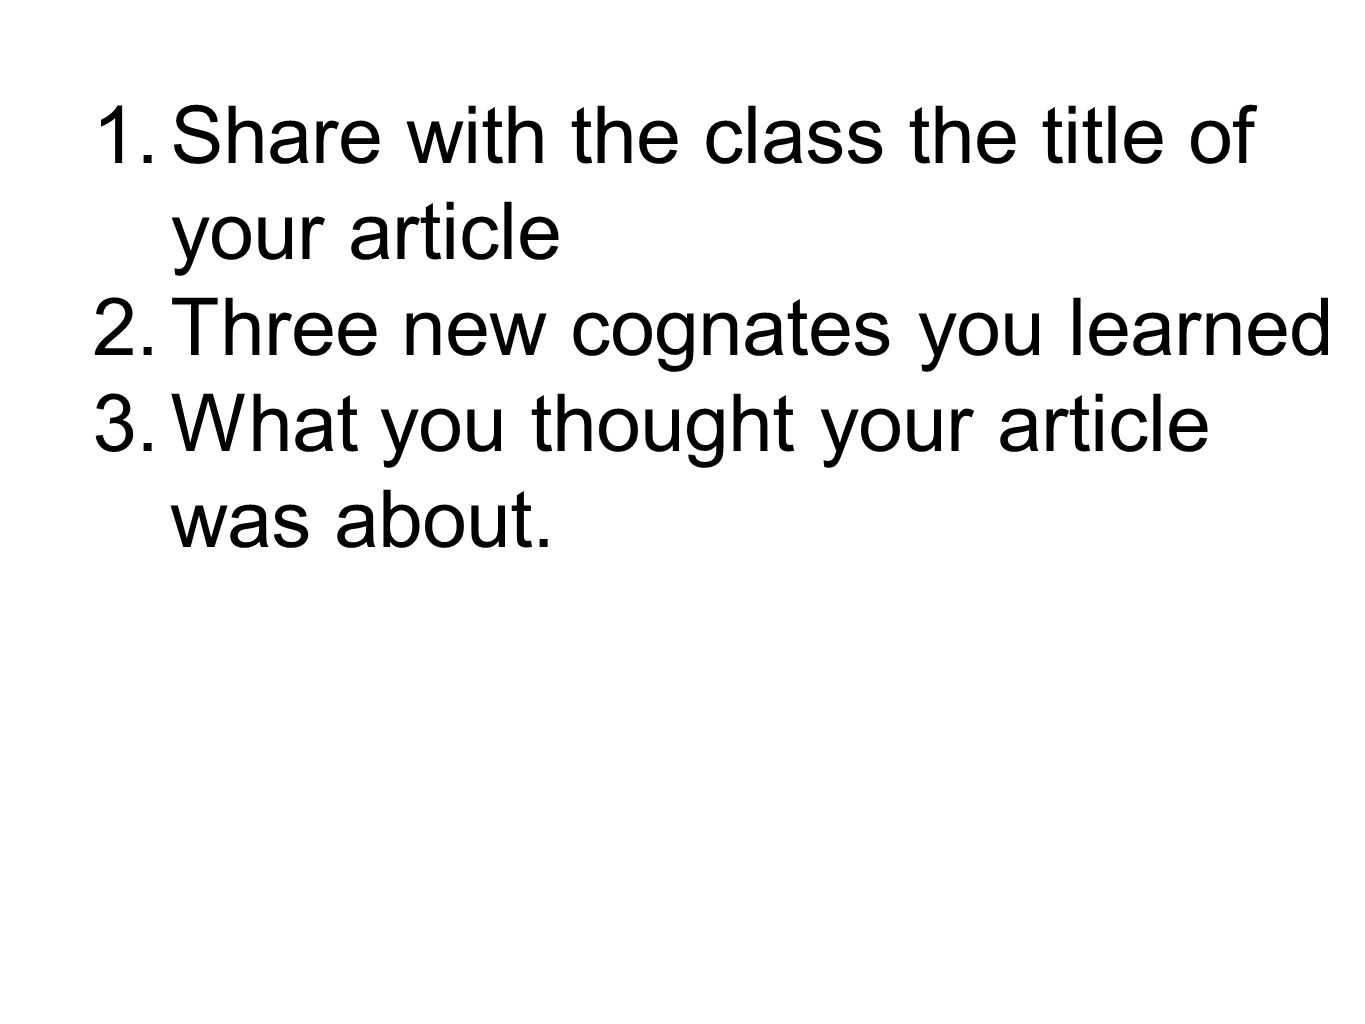 Share with the class the title of your article